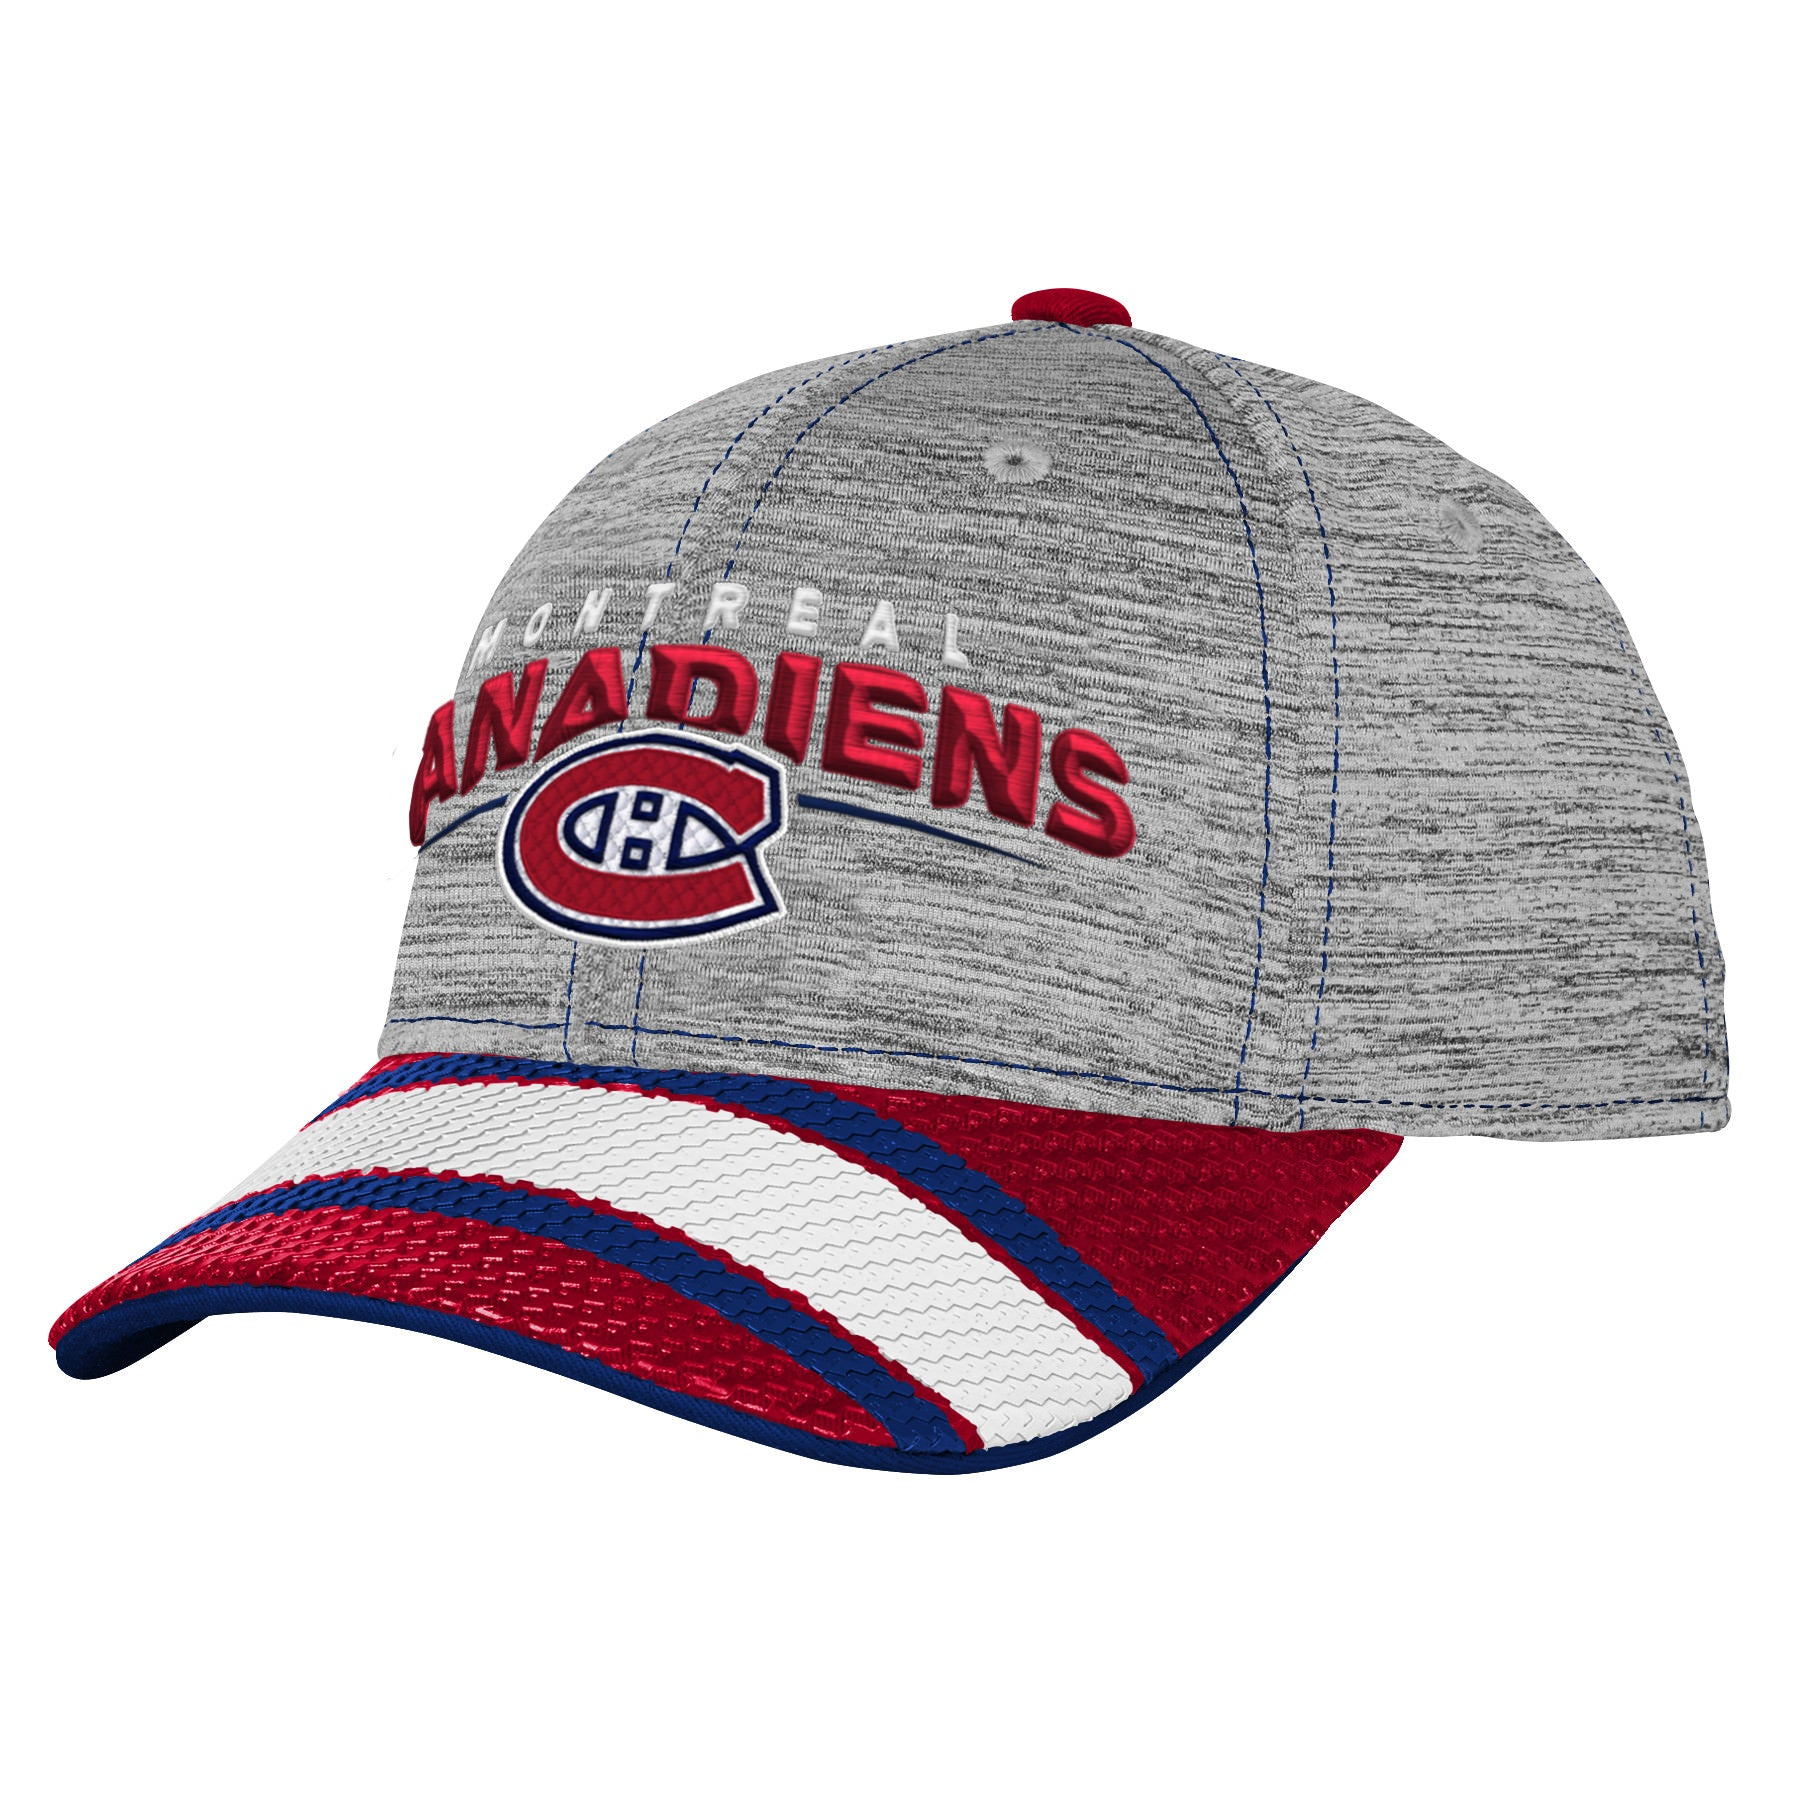 9f4b44b9ff3 Youth Montreal Canadiens Second Season Player Cap – Sport Army